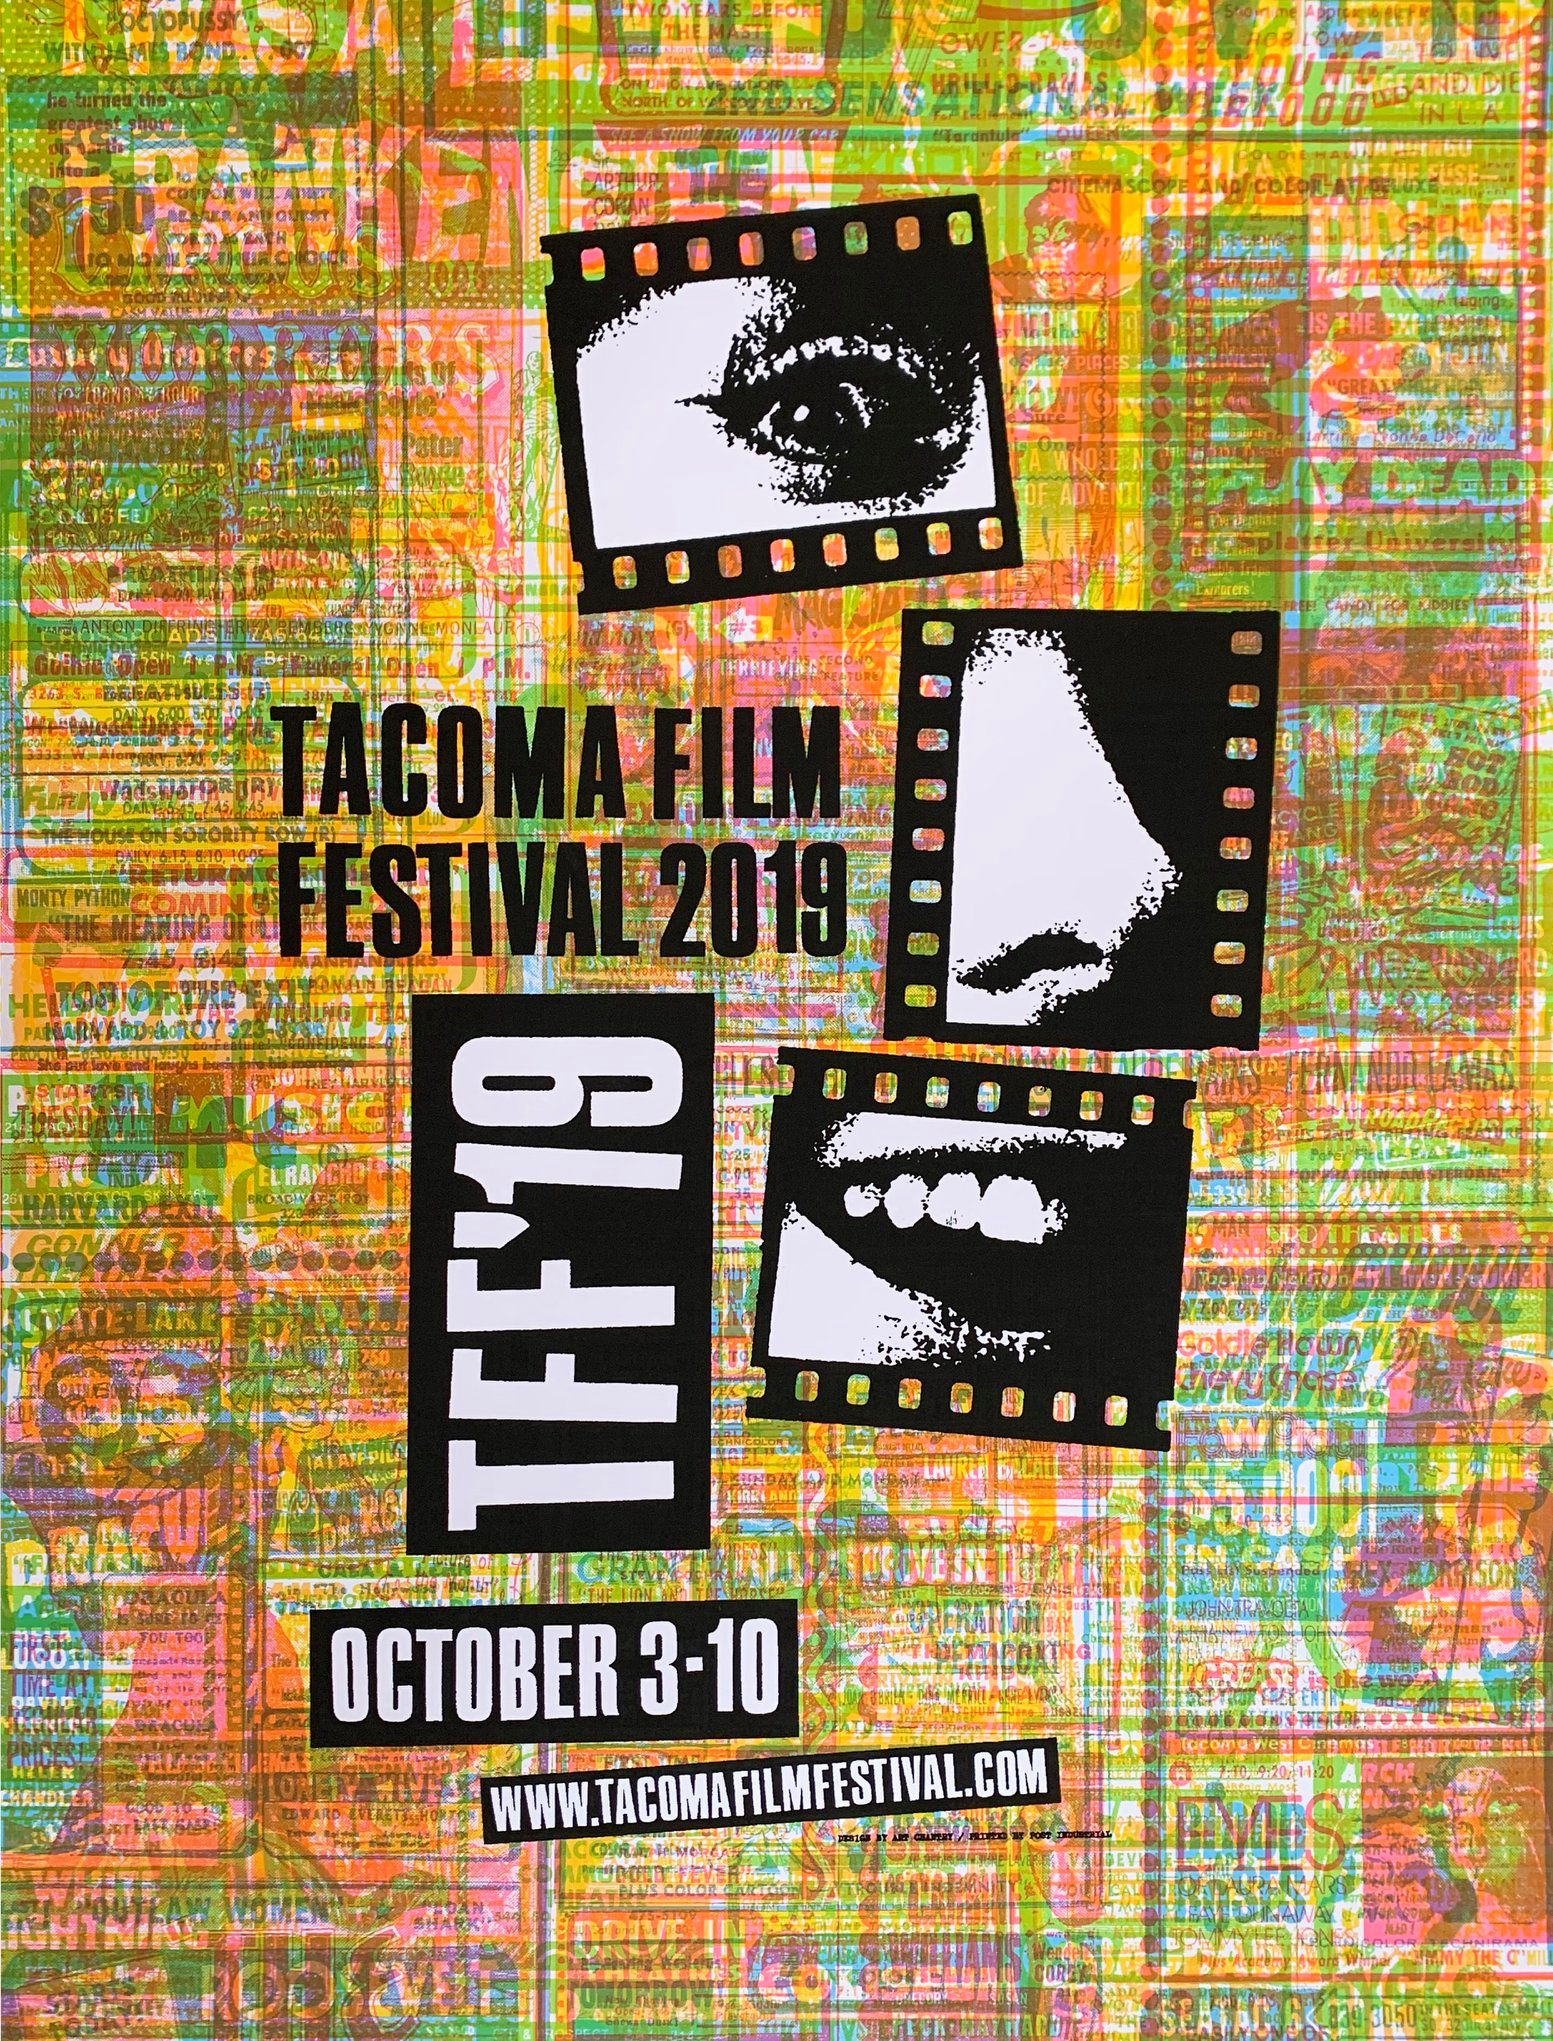 Image from   Tacoma Film Festival  - poster design by  Art Chantry